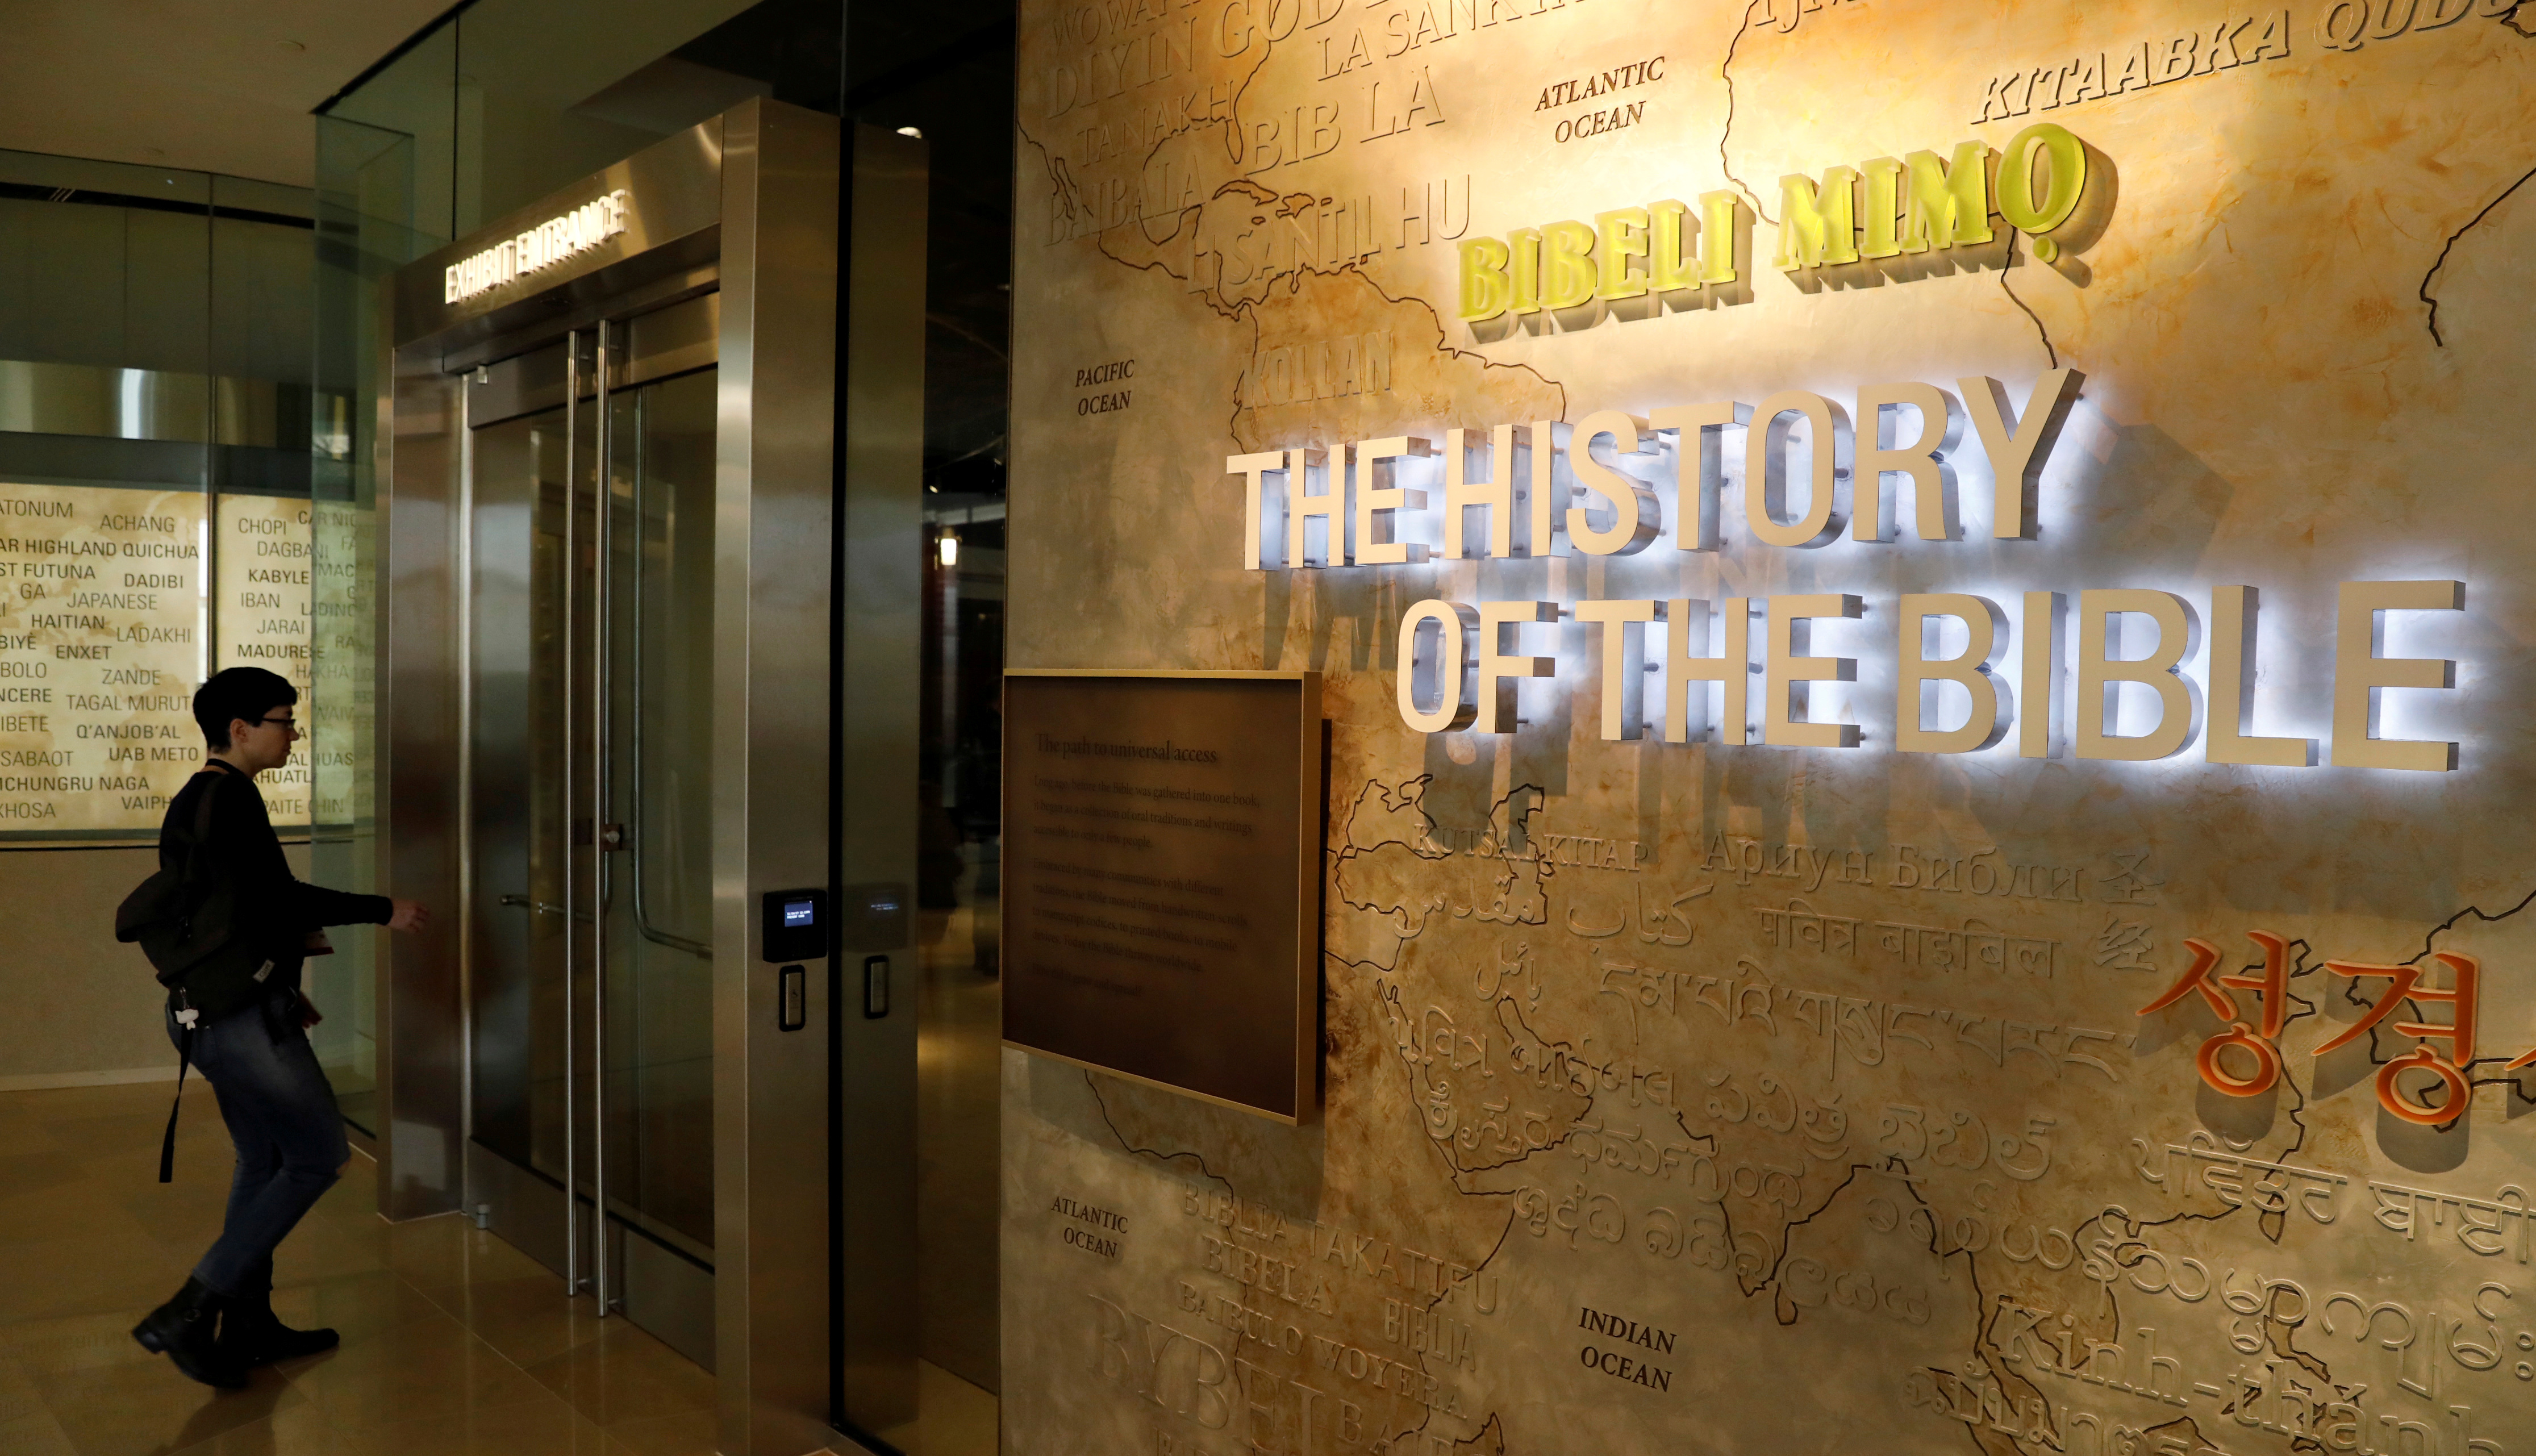 FILE PHOTO: A visitor enters an exhibit room during a preview at the Museum of the Bible in Washington, U.S., November 14, 2017. REUTERS/Kevin Lamarque/File Photo